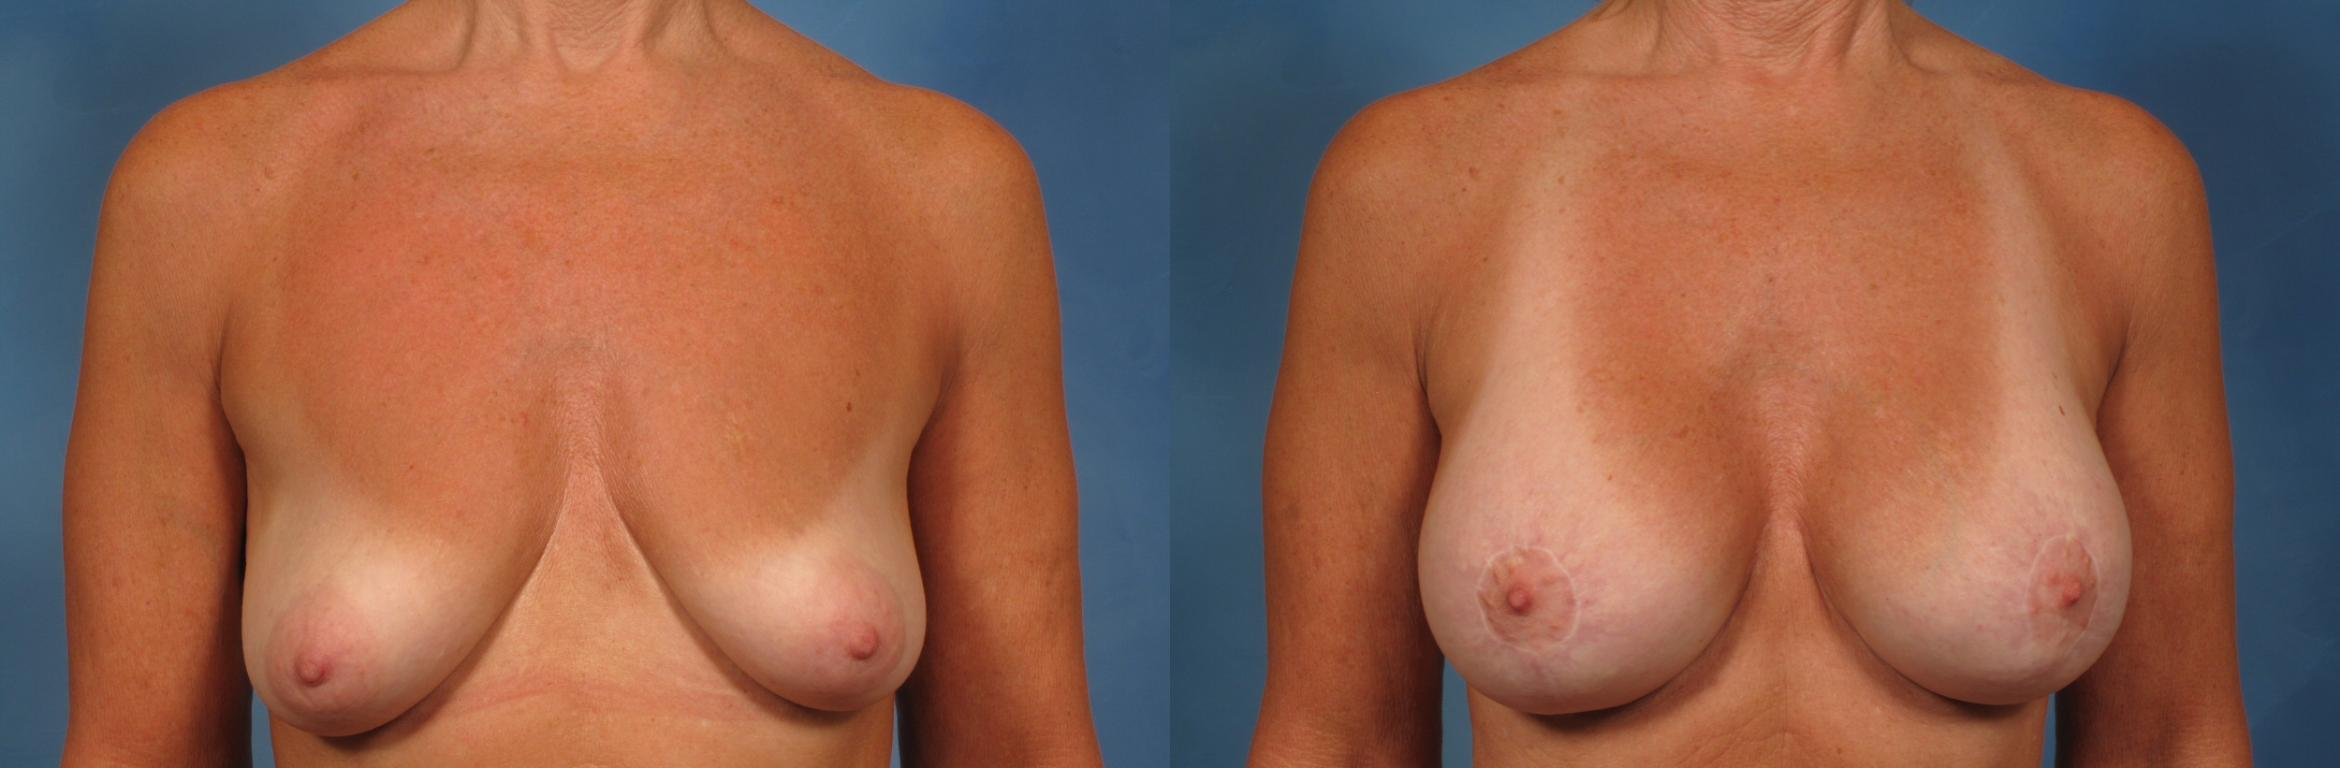 Breast Augmentation with Lift Case 252 Before & After View #1 | Naples, FL | Kent V. Hasen, M.D.